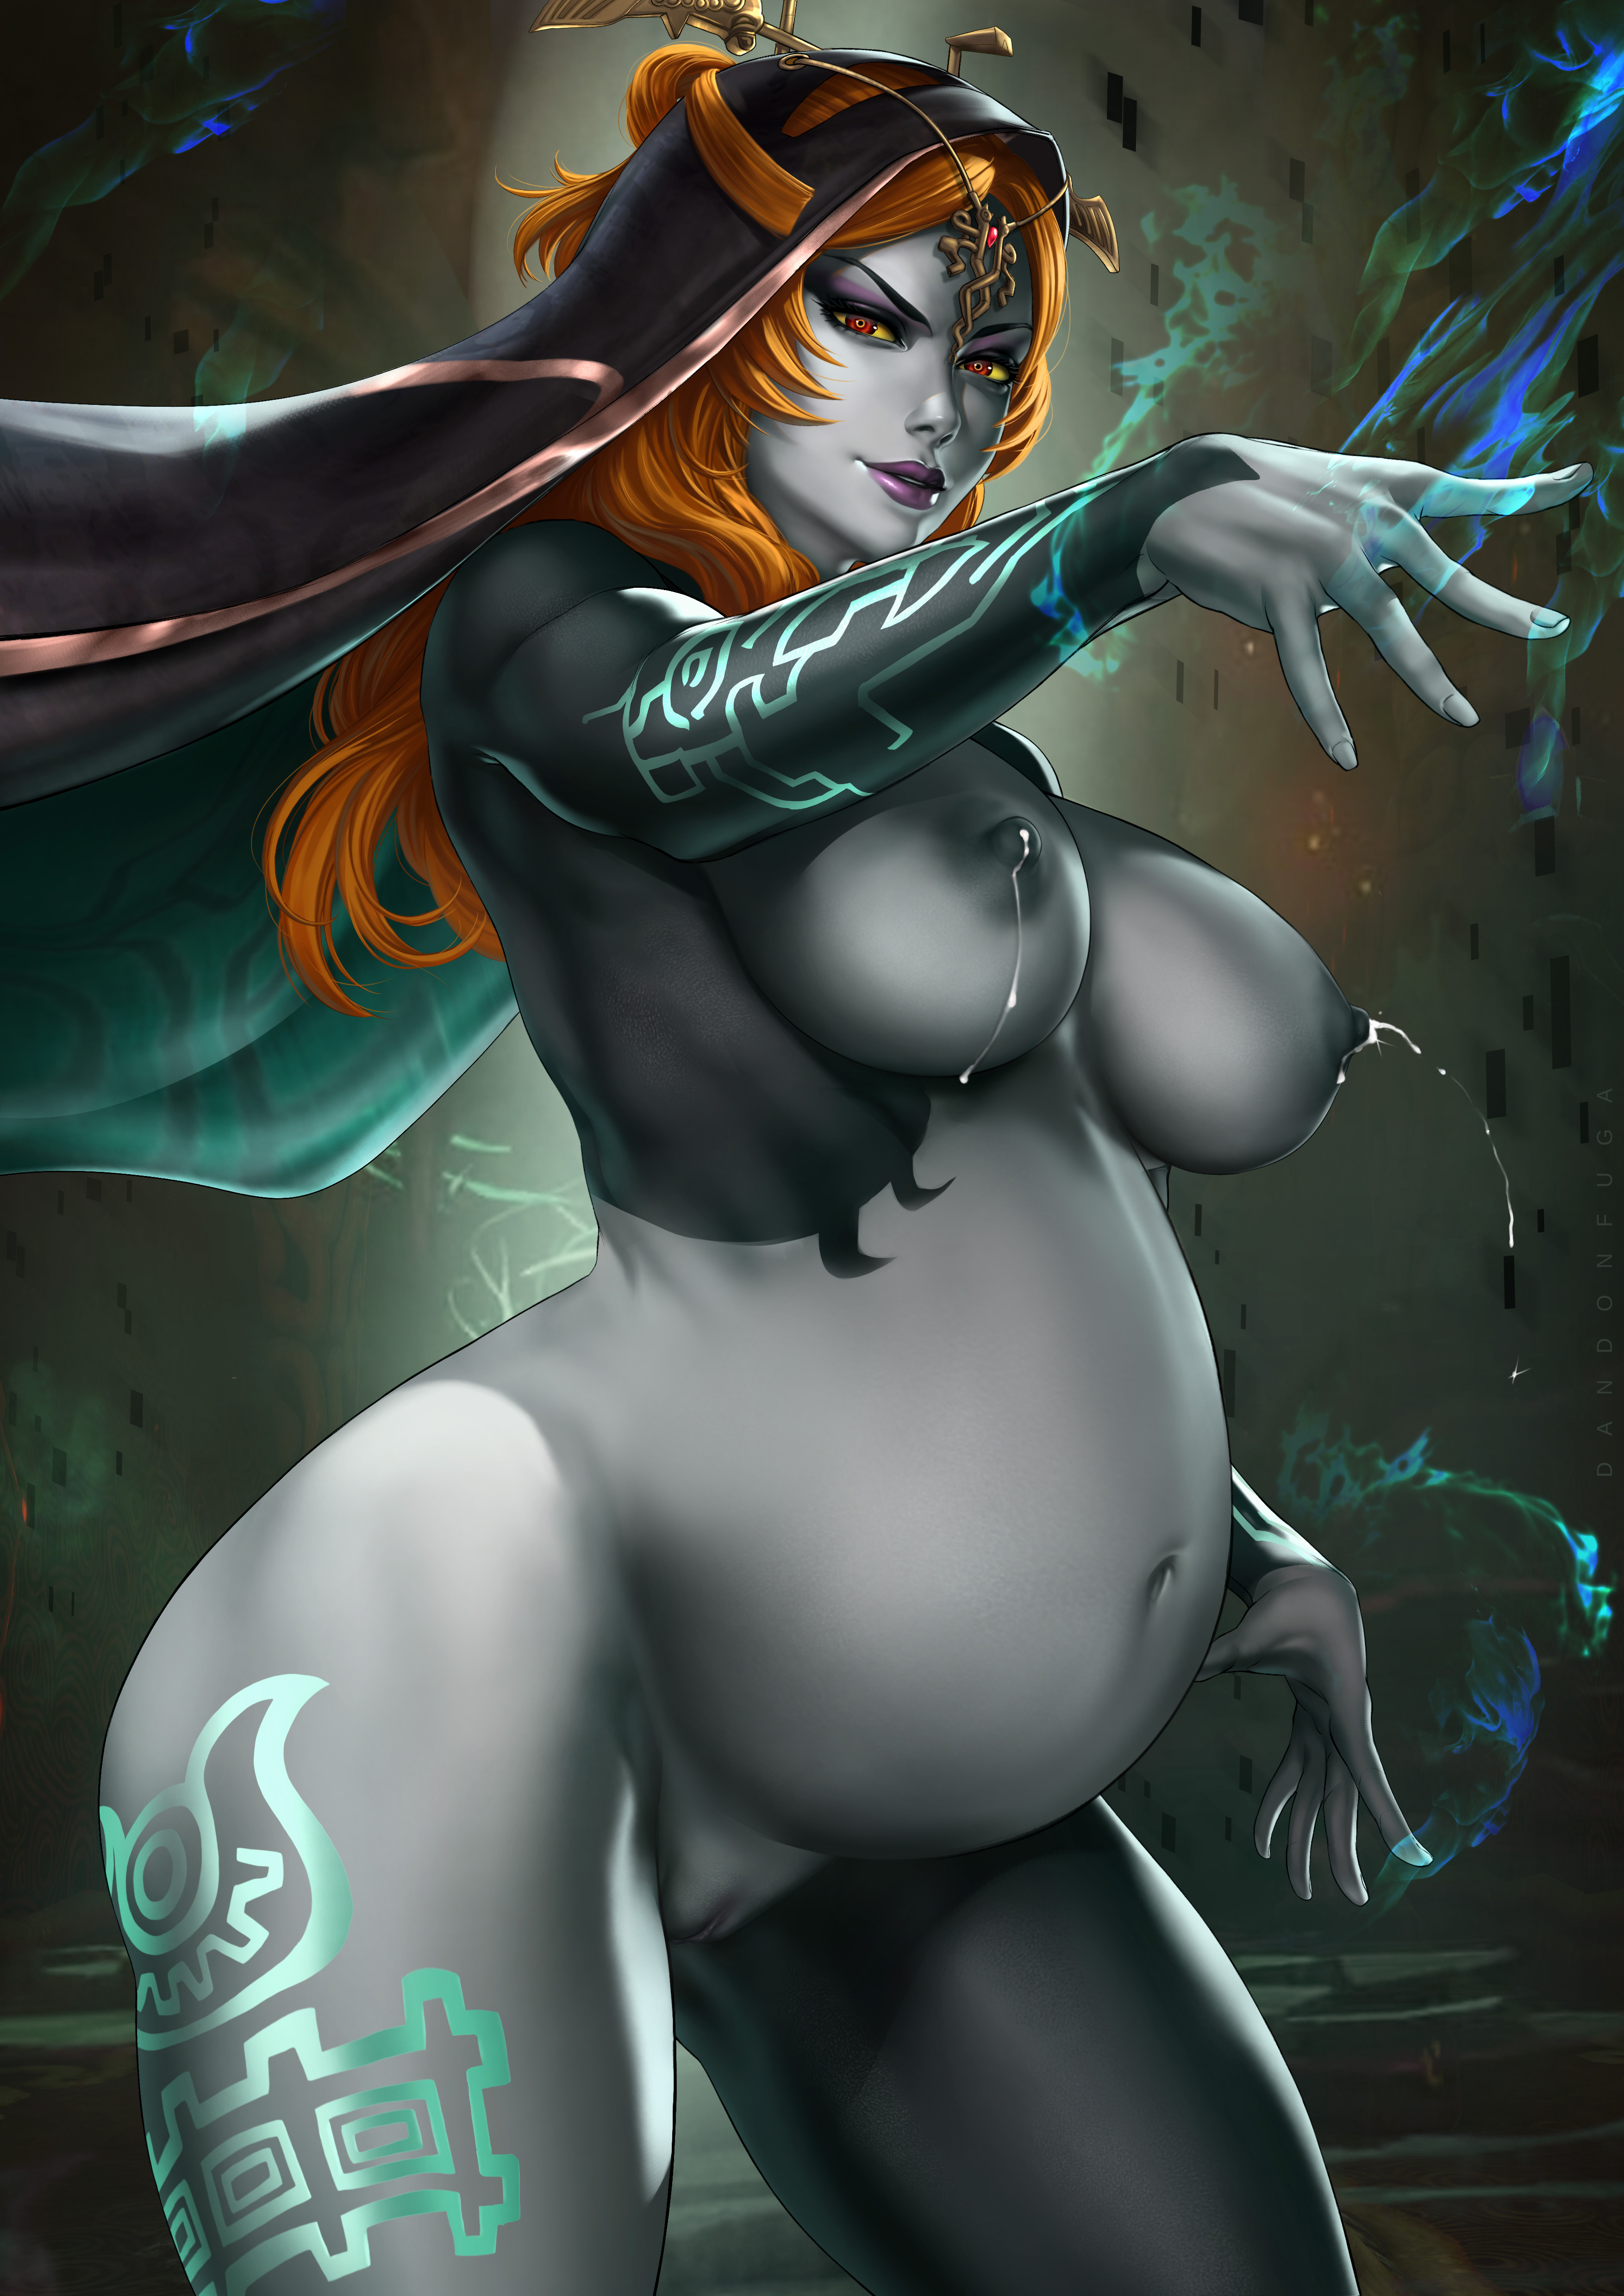 dandon fuga midna twili midna absurd res nintendo twilight princess the legend of zelda 1girls areolae breasts grey skin lactating lactation long hair magic milk naked nipples nude orange hair pregnant purple lipstick pussy ready to pop red eyes tattoo veil yellow sclera